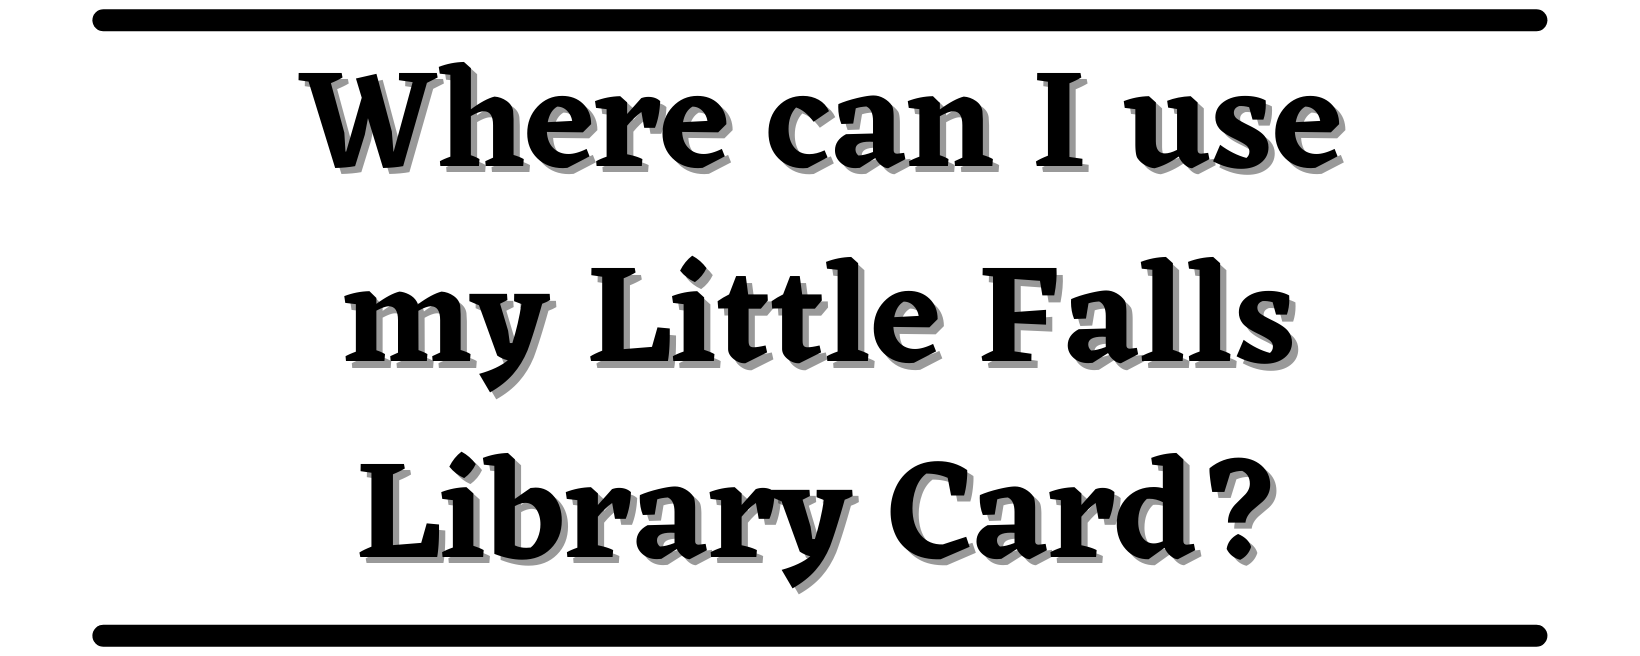 Where can I use my library card